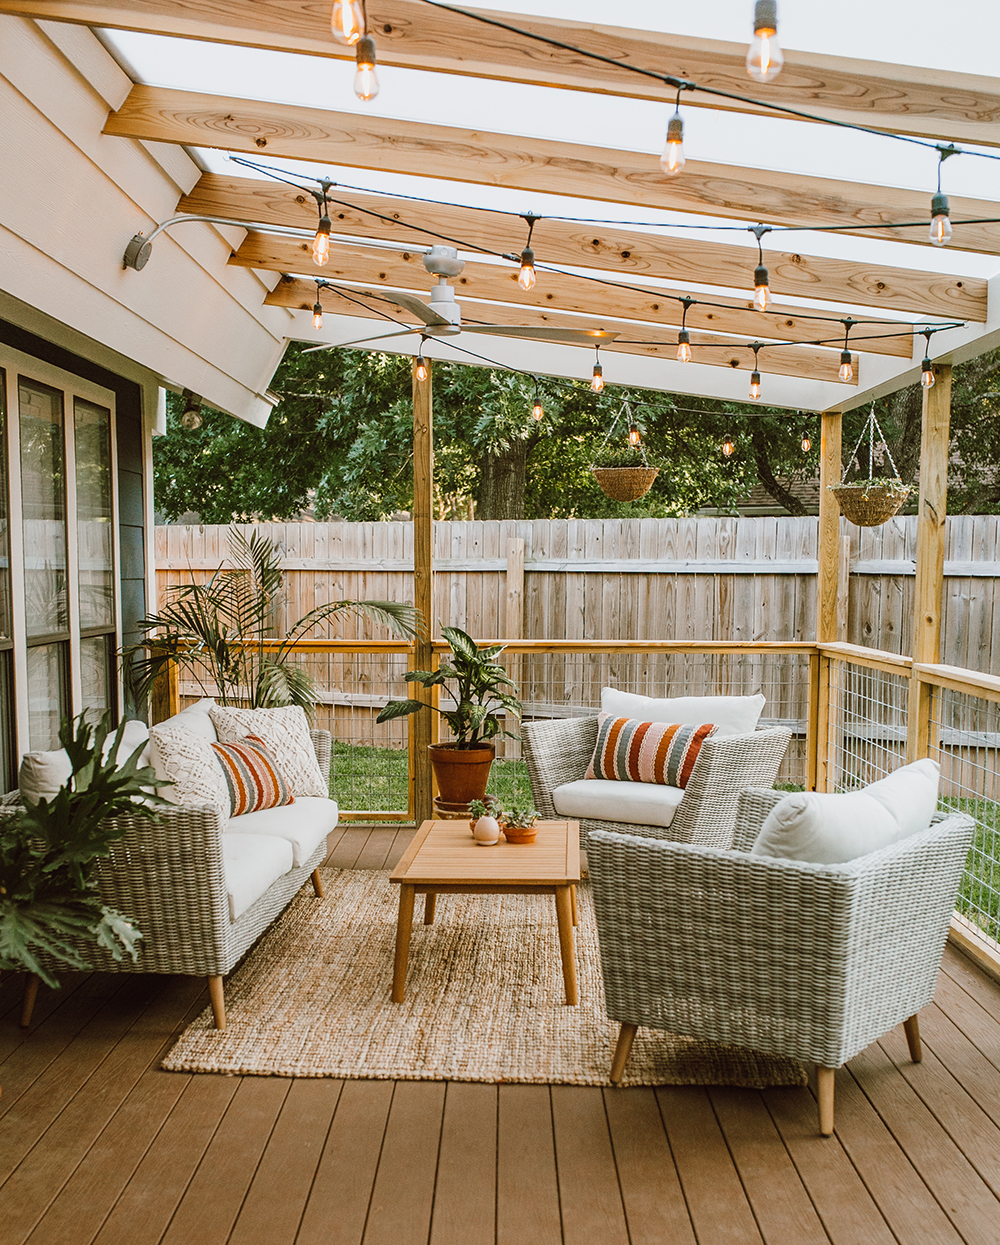 livvyland-blog-olivia-watson-before-after-outside-patio-renovation-reveal-furniture-austin-texas-lifestyle-blogger-13